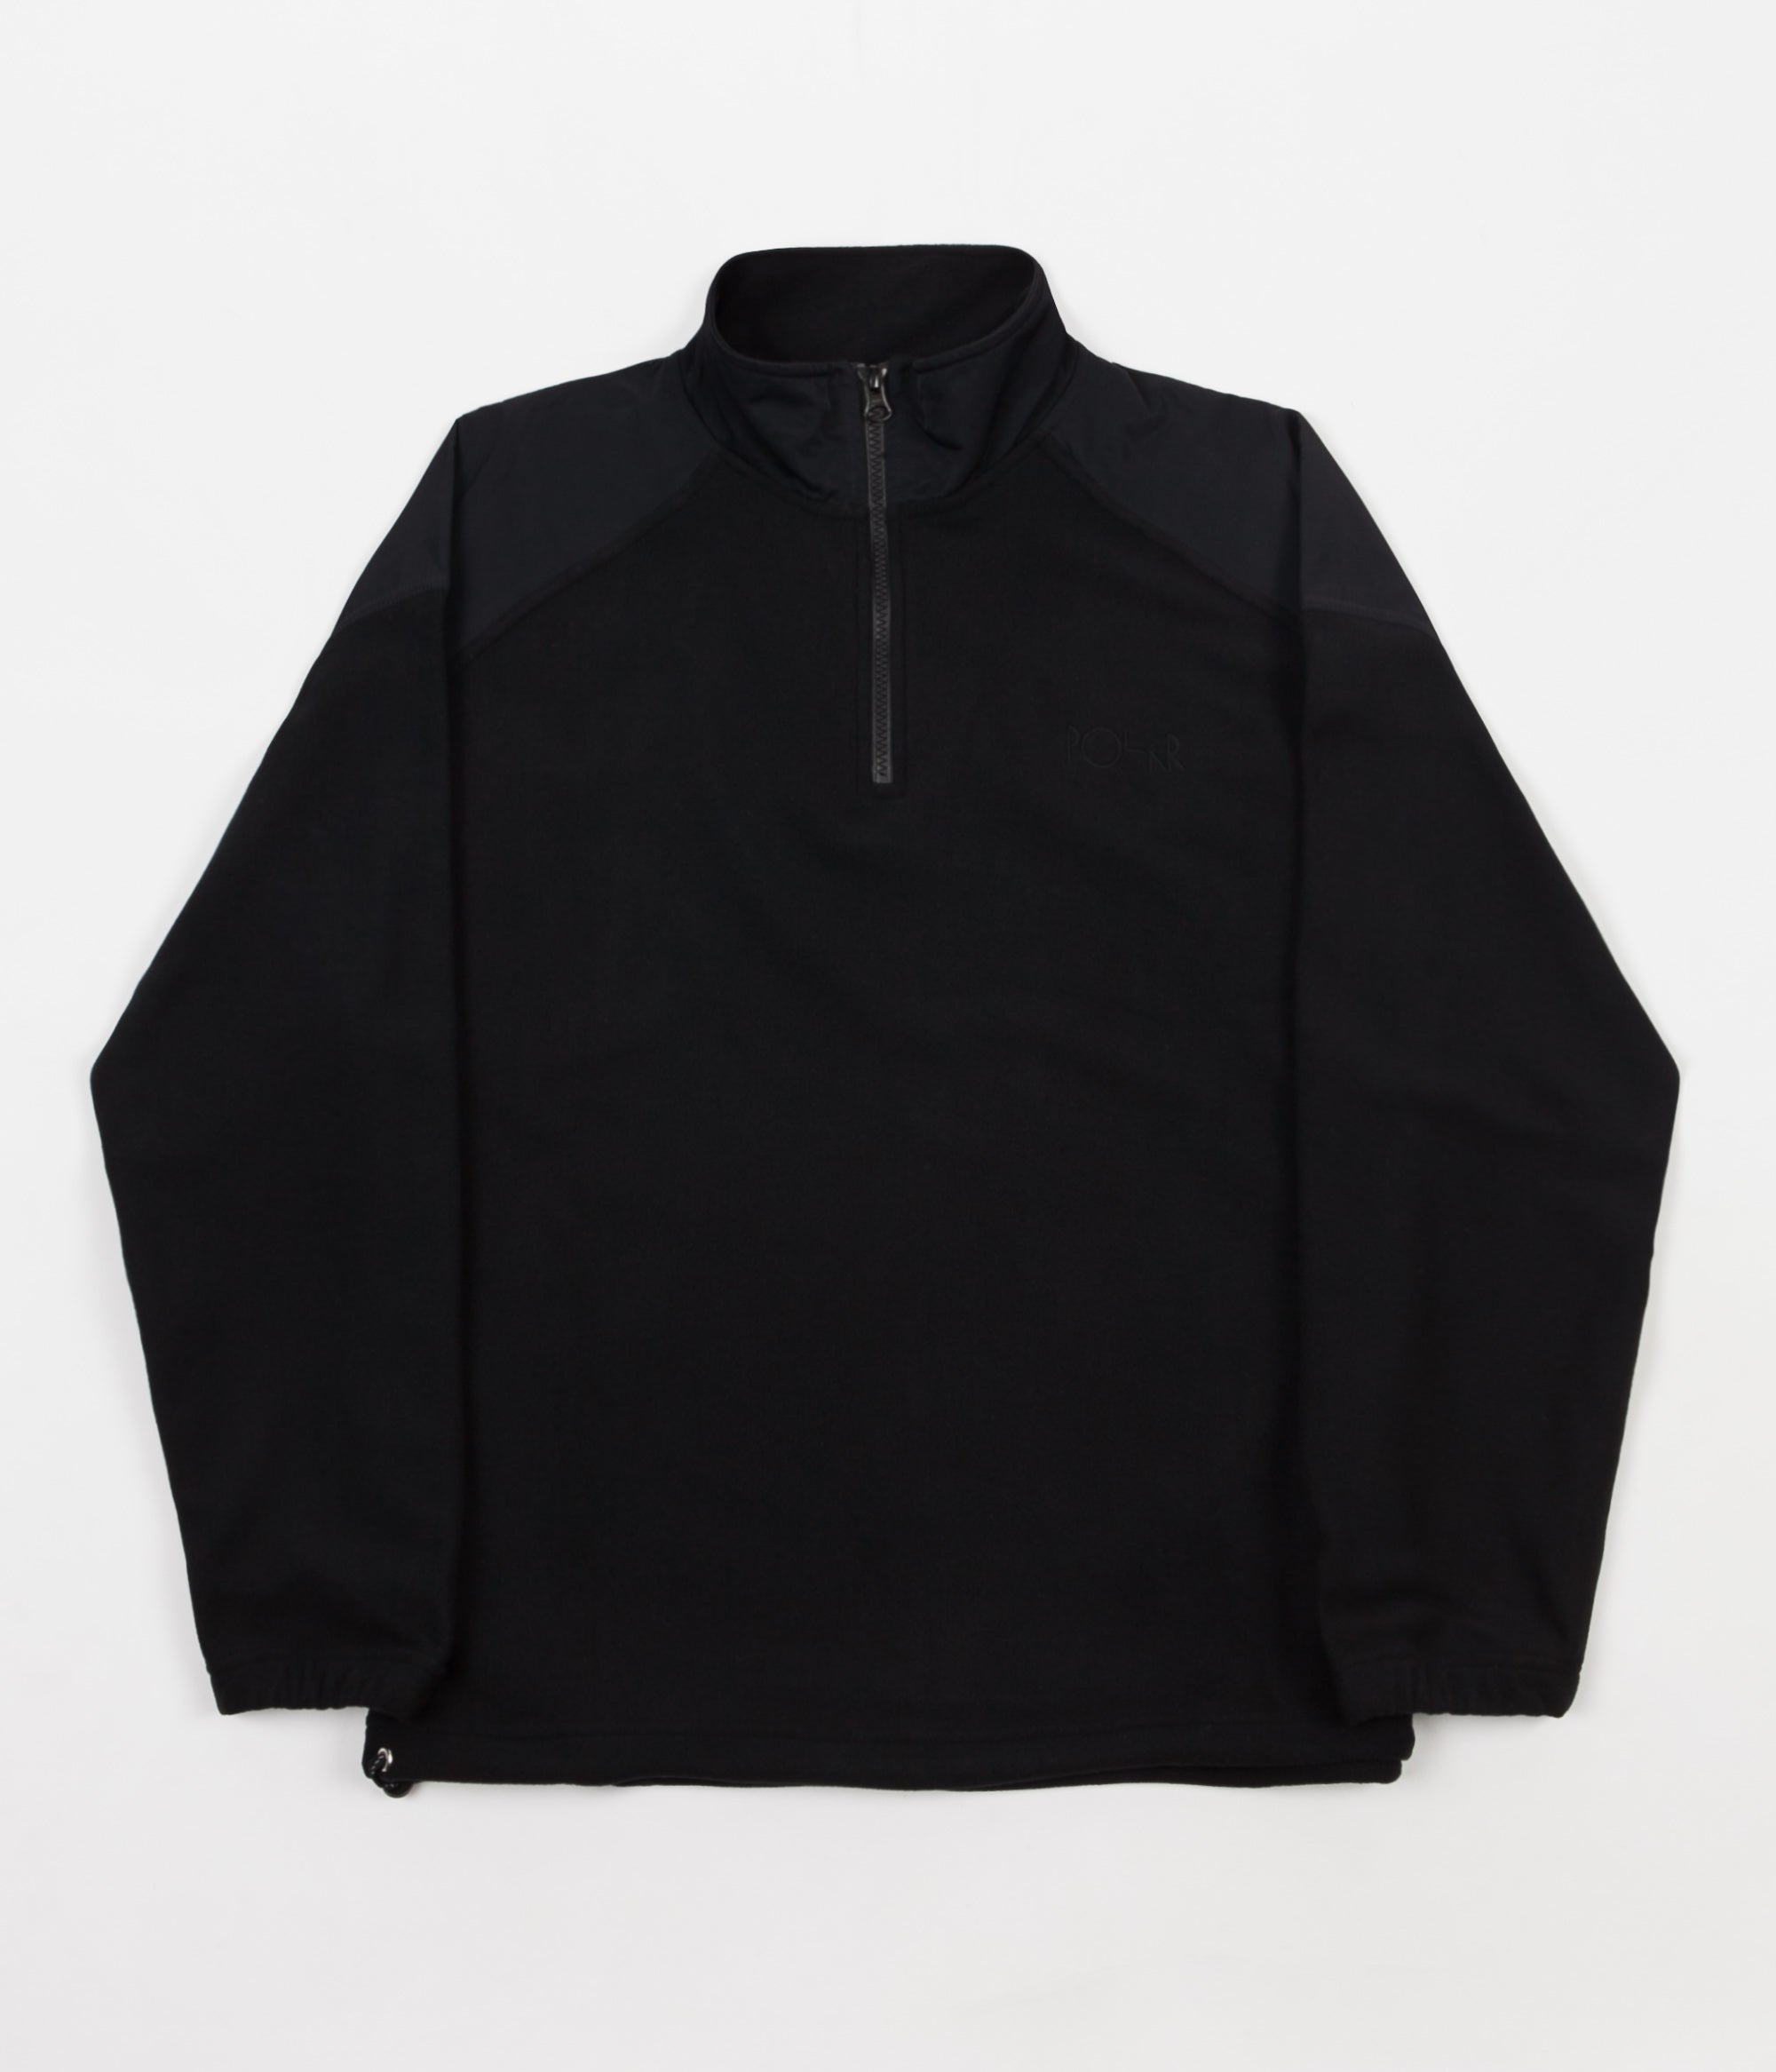 Polar Lightweight Fleece 1/4 Zip Jacket - Black